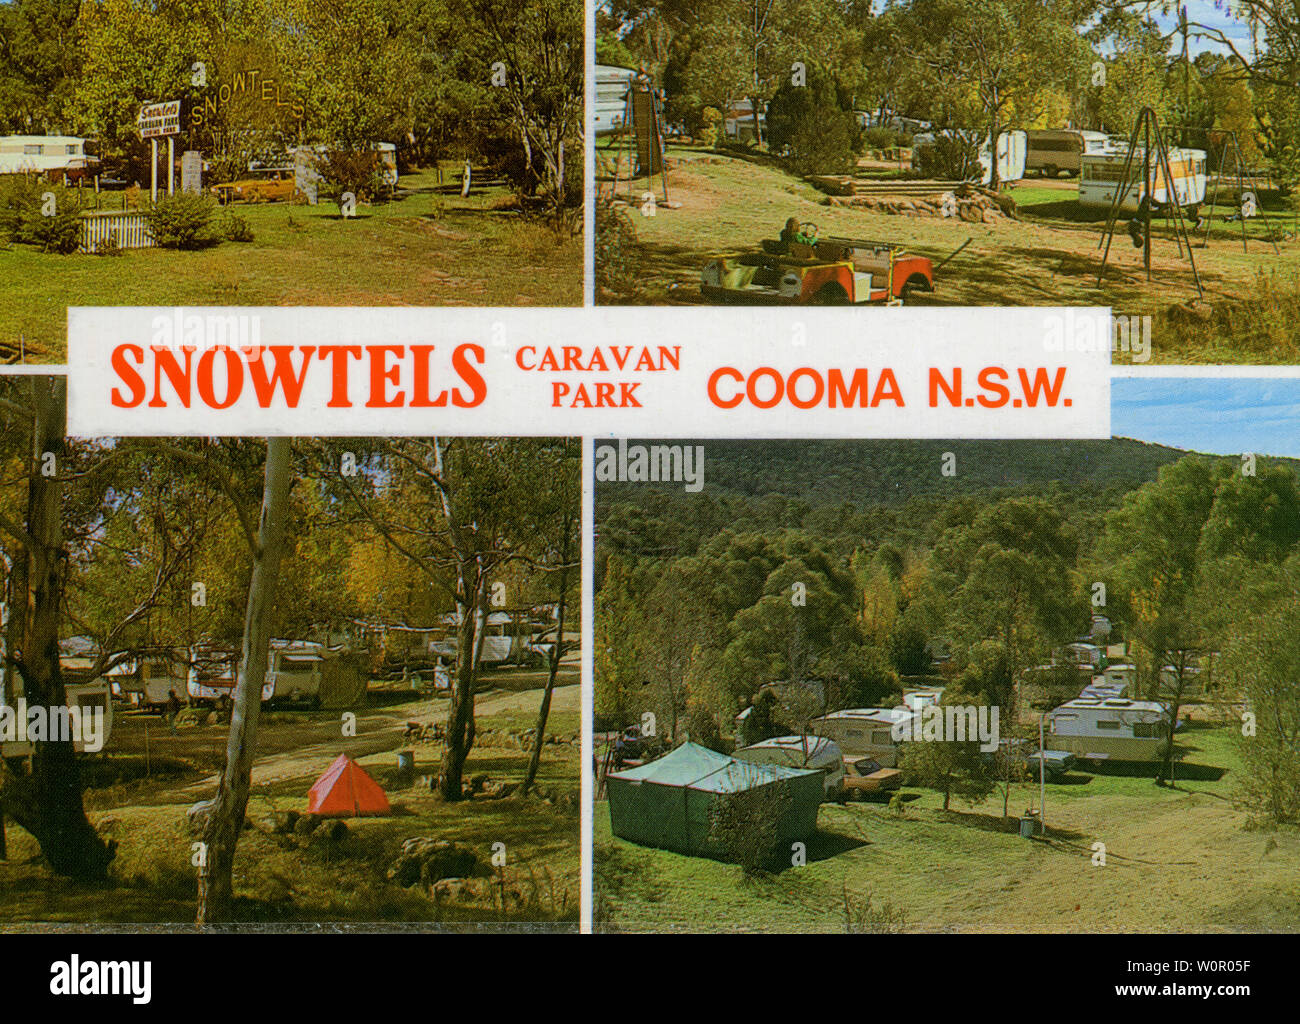 A postcard image of the Snowtels Caravan Park in Cooma, Australia. Age of the card is unavailable but based on the cars in the image its likely to be early to mid 1970's. The original publisher was Bartel & Schorn. - Stock Image